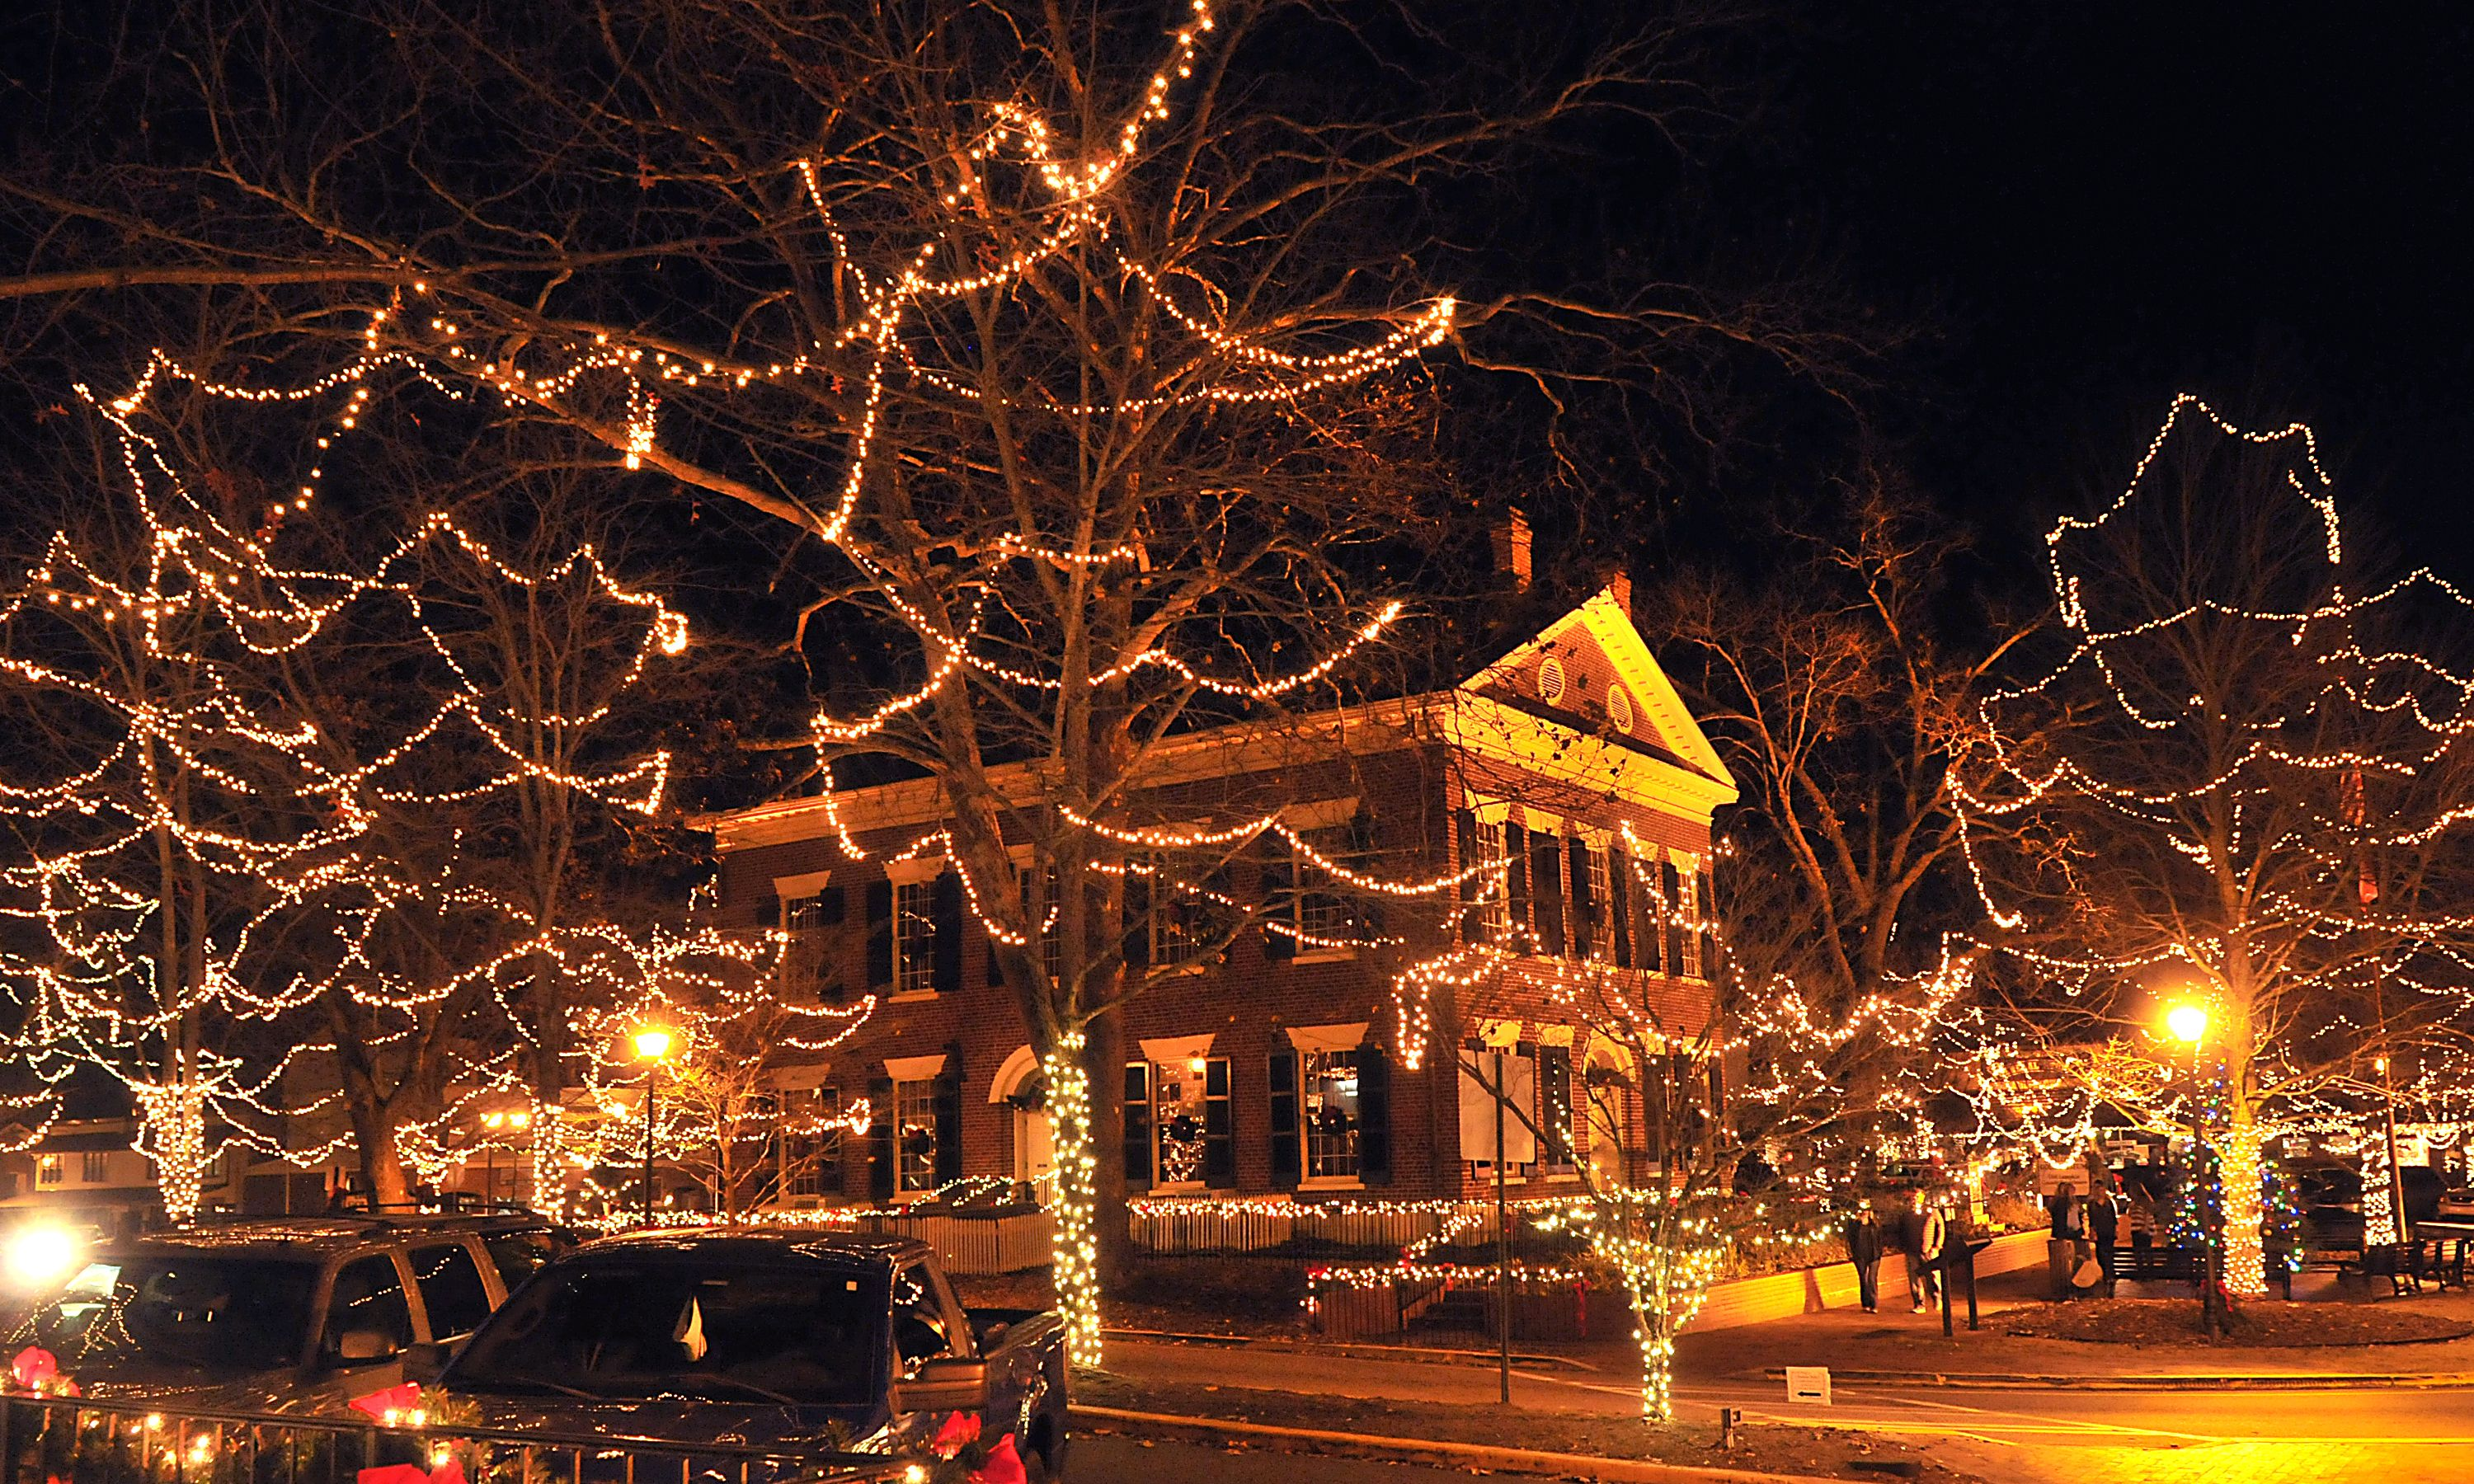 There is nothing quite like Christmas in Dahlonega ...